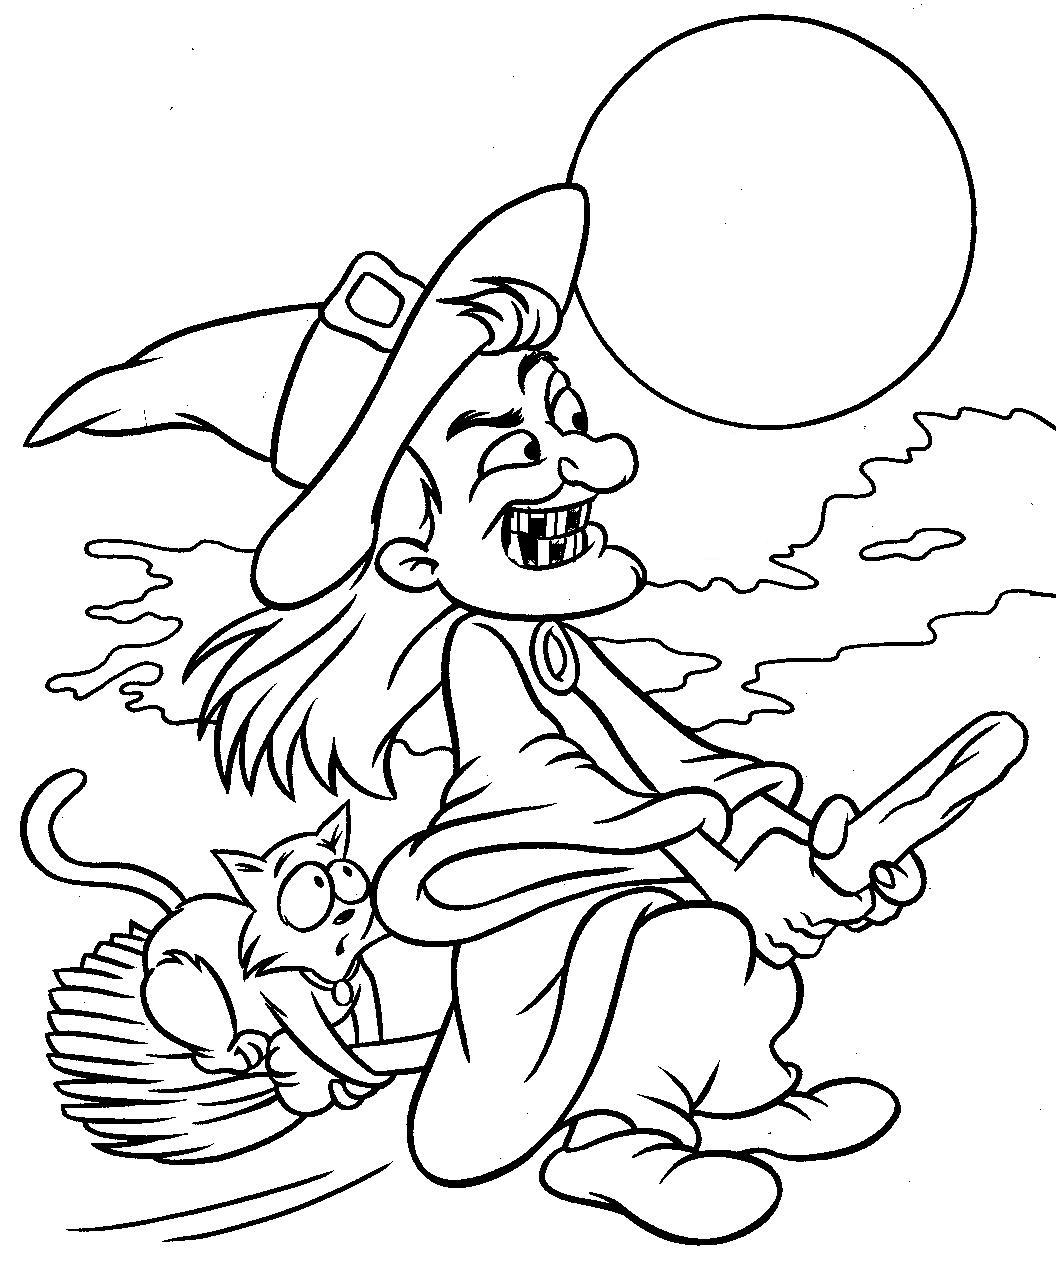 halloween color pages halloween coloring pages june 2012 color halloween pages